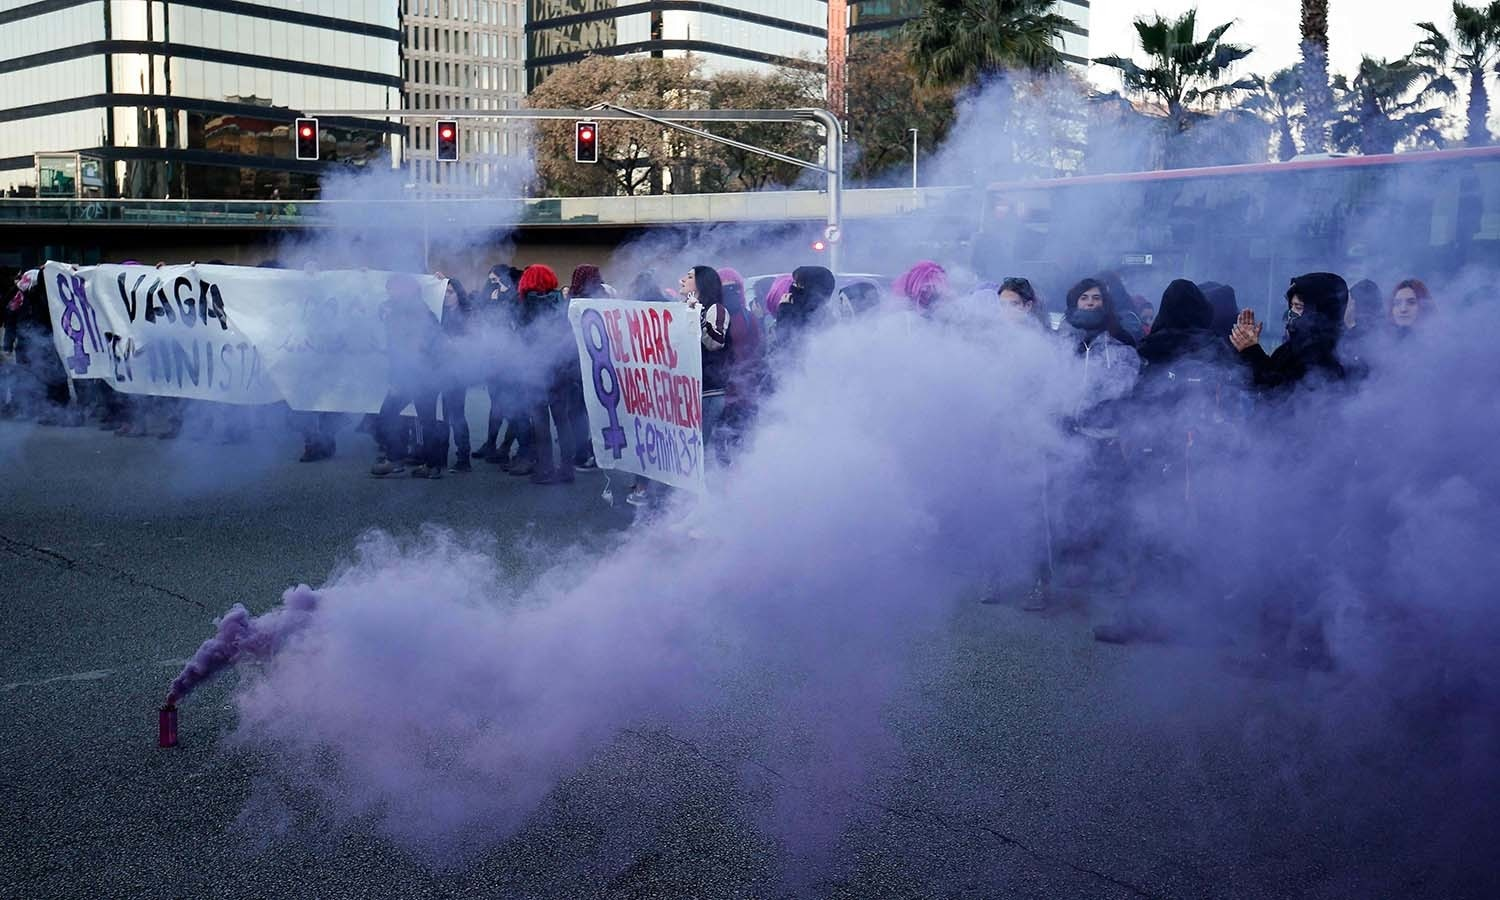 Demonstrators block the Gran Via street during a protest marking International Women's Day in Barcelona on Friday. — AFP